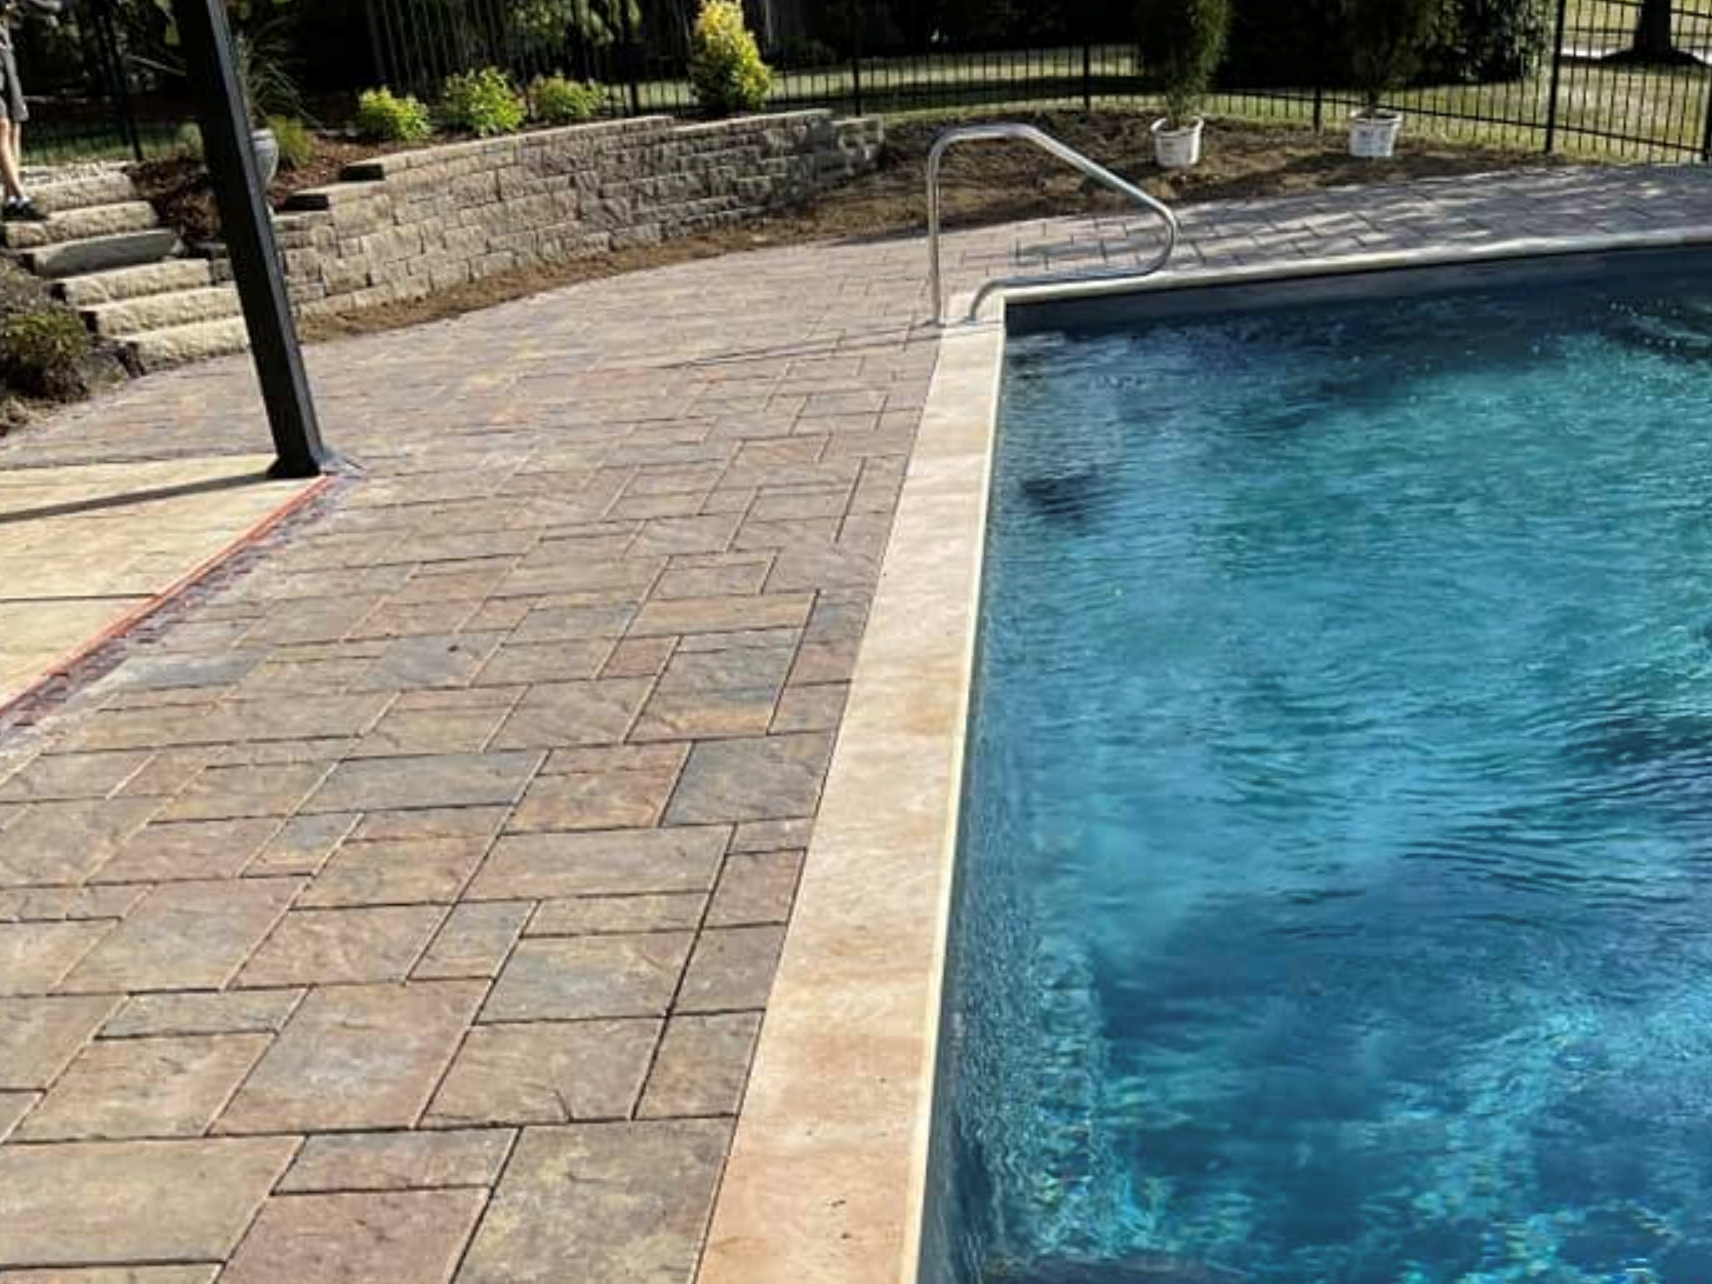 this image shows pool deck in Cupertino, California